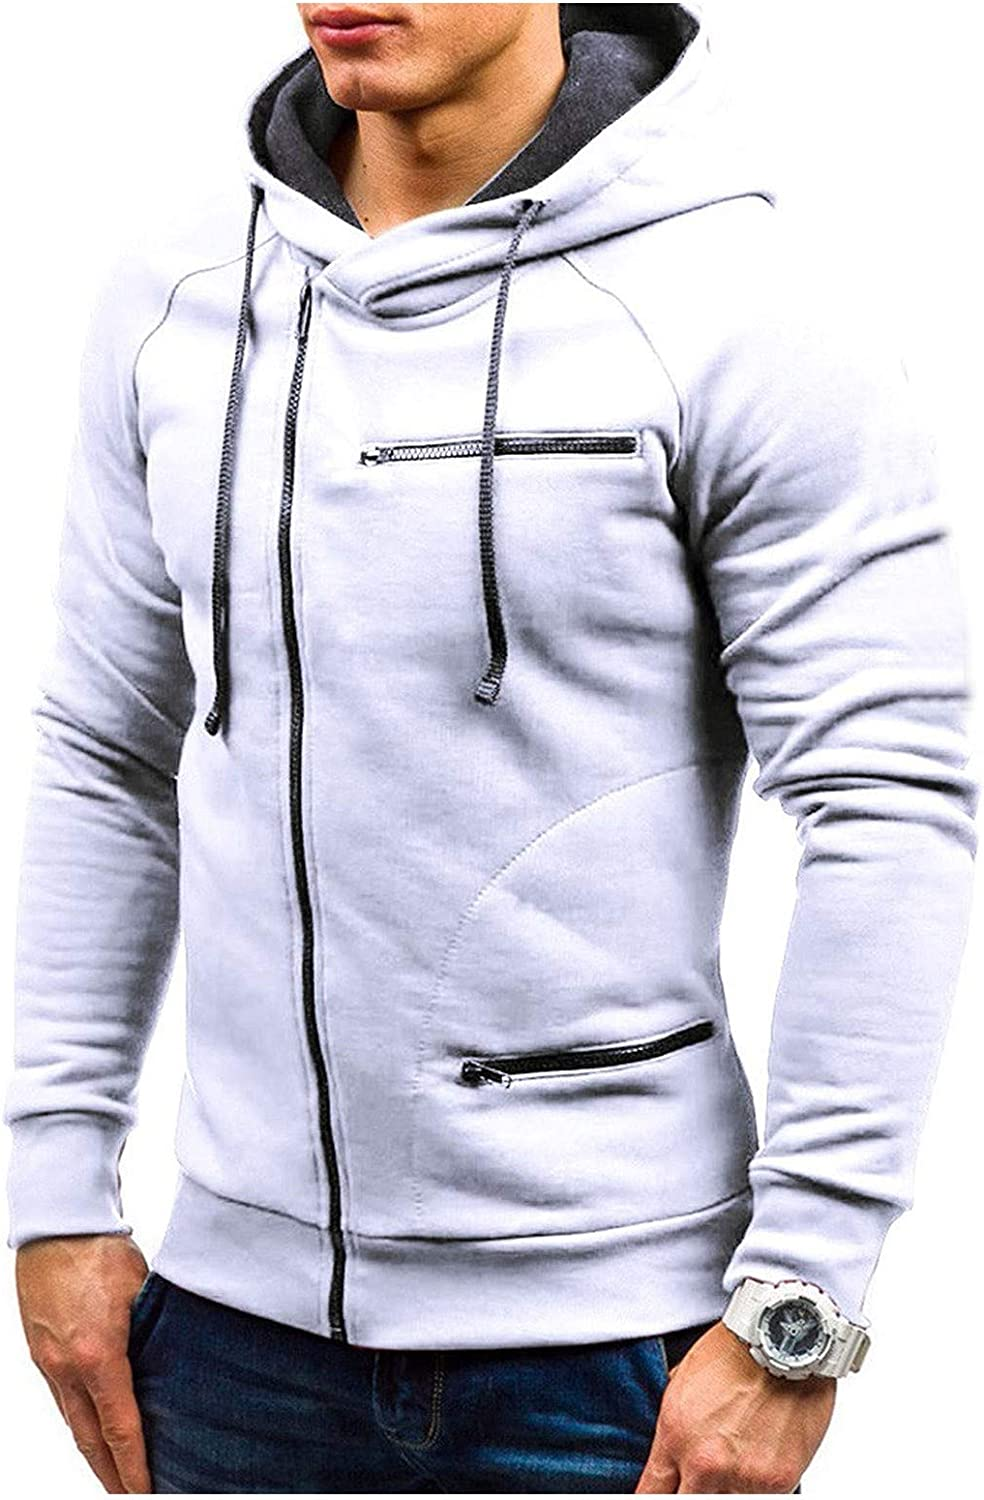 XXBR Men's Zipper Hoodies, Fall Fashion Patchwork Drawstring Hooded Sweatshirts Workout Sports Casual Pullover Tops